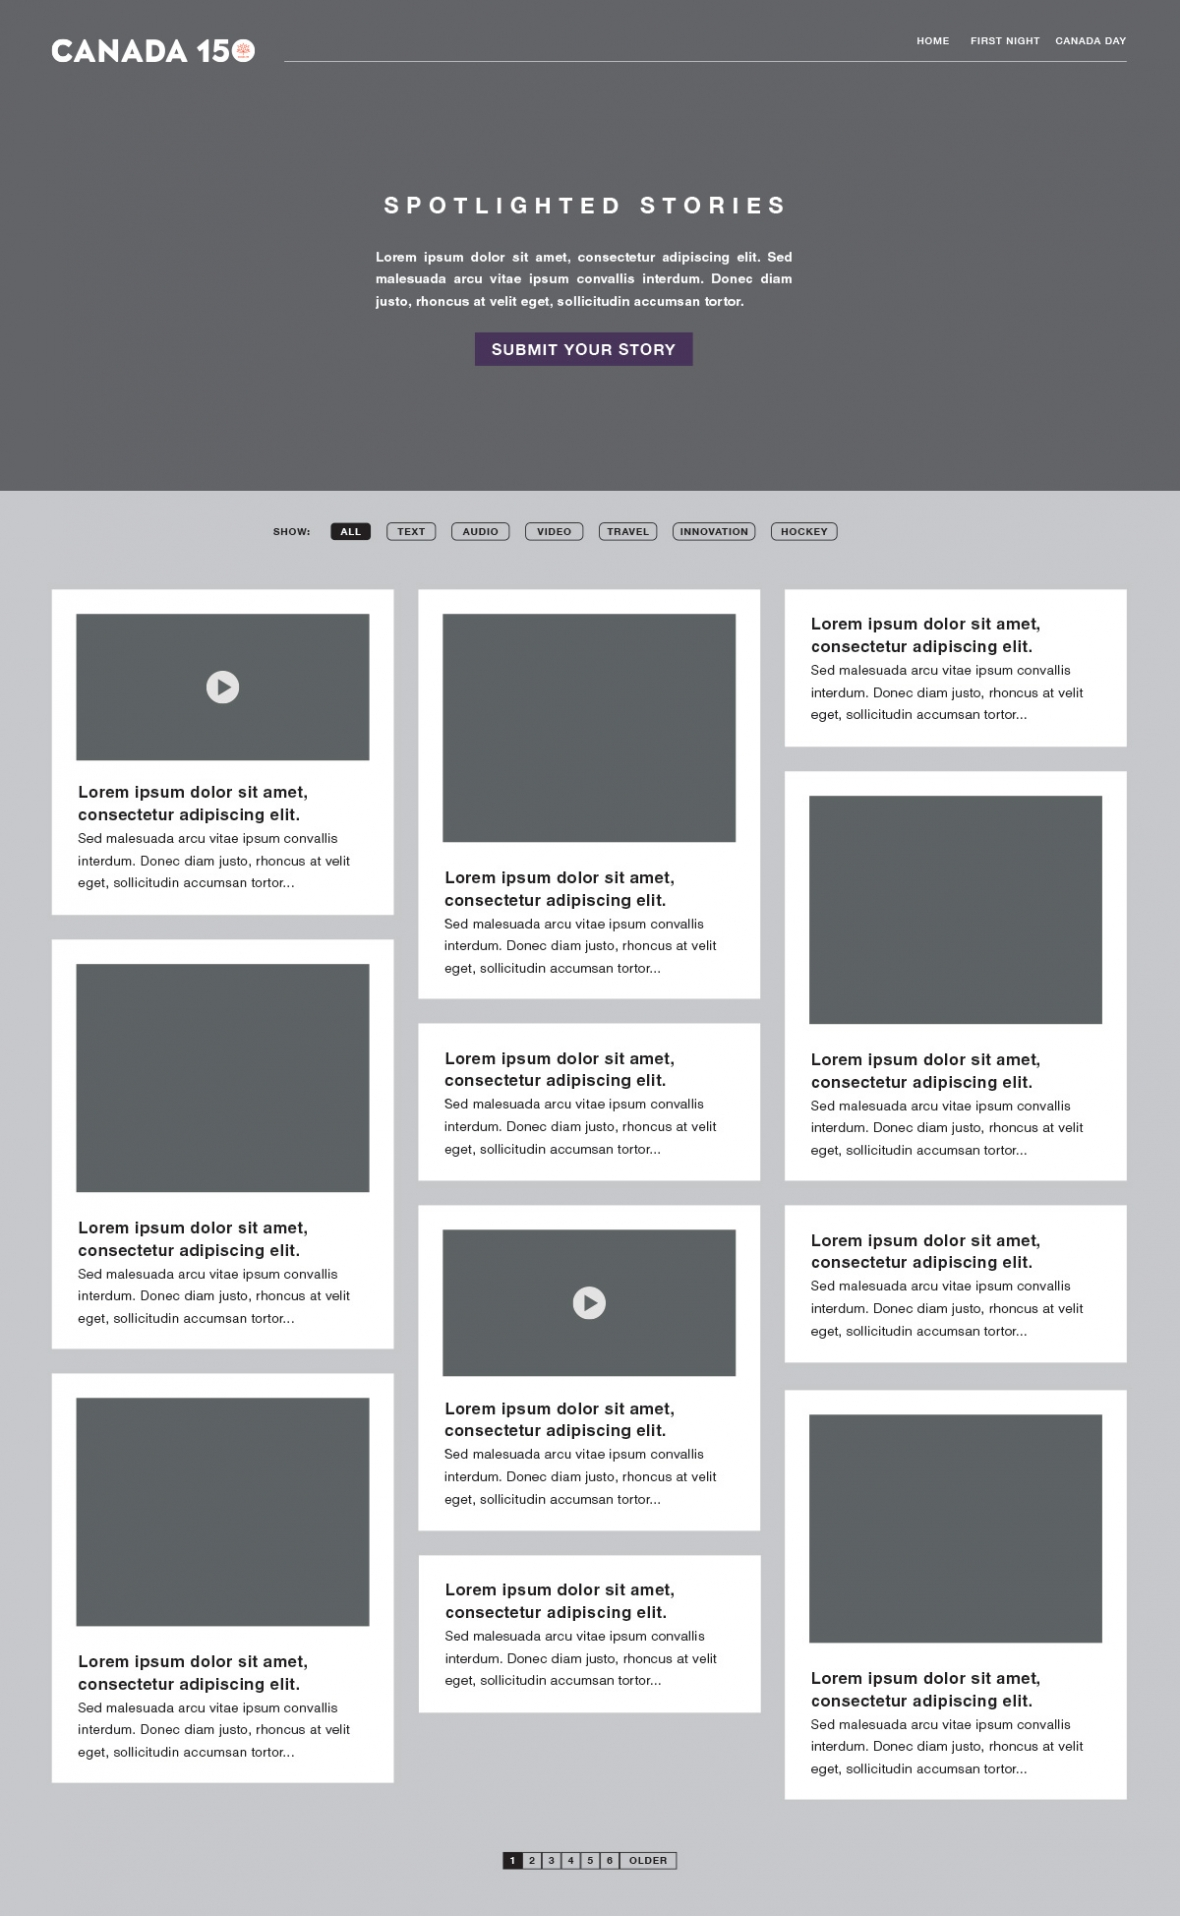 Spotlighted Stories Wireframe